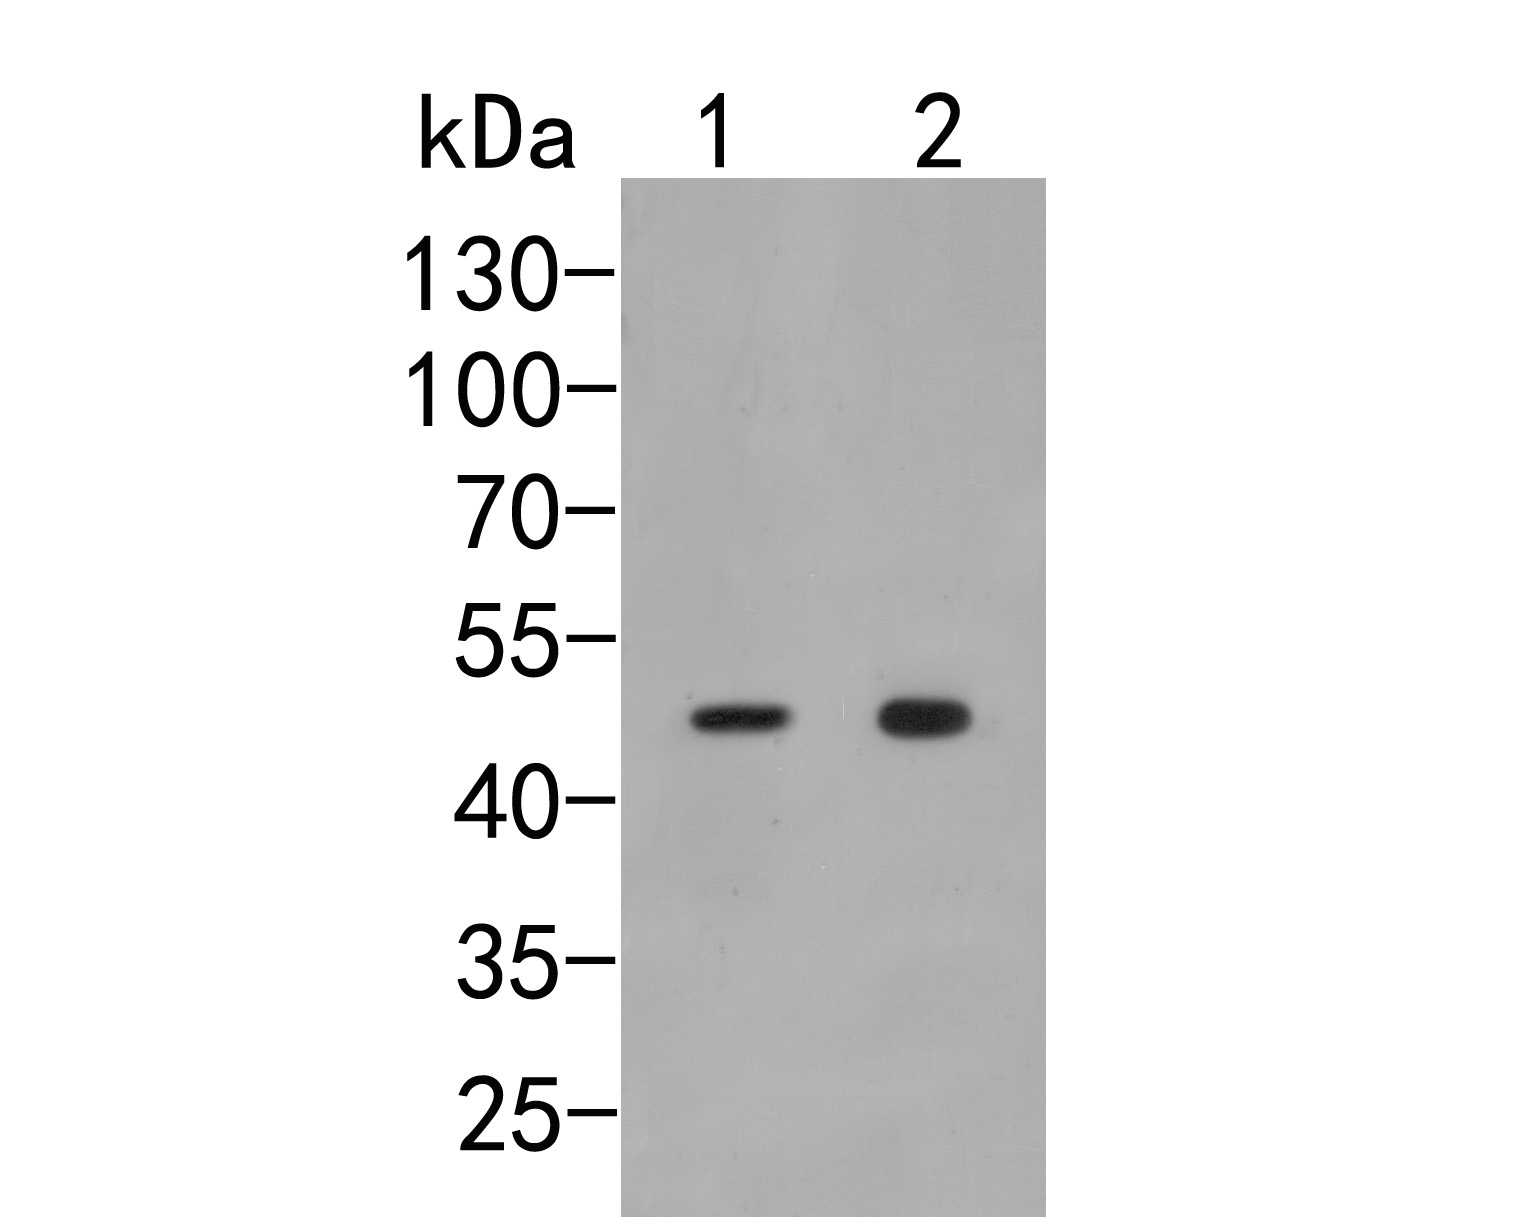 Western blot analysis of p50 dynamitin on different lysates. Proteins were transferred to a PVDF membrane and blocked with 5% BSA in PBS for 1 hour at room temperature. The primary antibody (HA500029, 1/500) was used in 5% BSA at room temperature for 2 hours. Goat Anti-Rabbit IgG - HRP Secondary Antibody (HA1001) at 1:5,000 dilution was used for 1 hour at room temperature.<br /> Positive control: <br /> Lane 1: SHSY5Y cell lysate<br /> Lane 2: Mouse brain tissue lysate